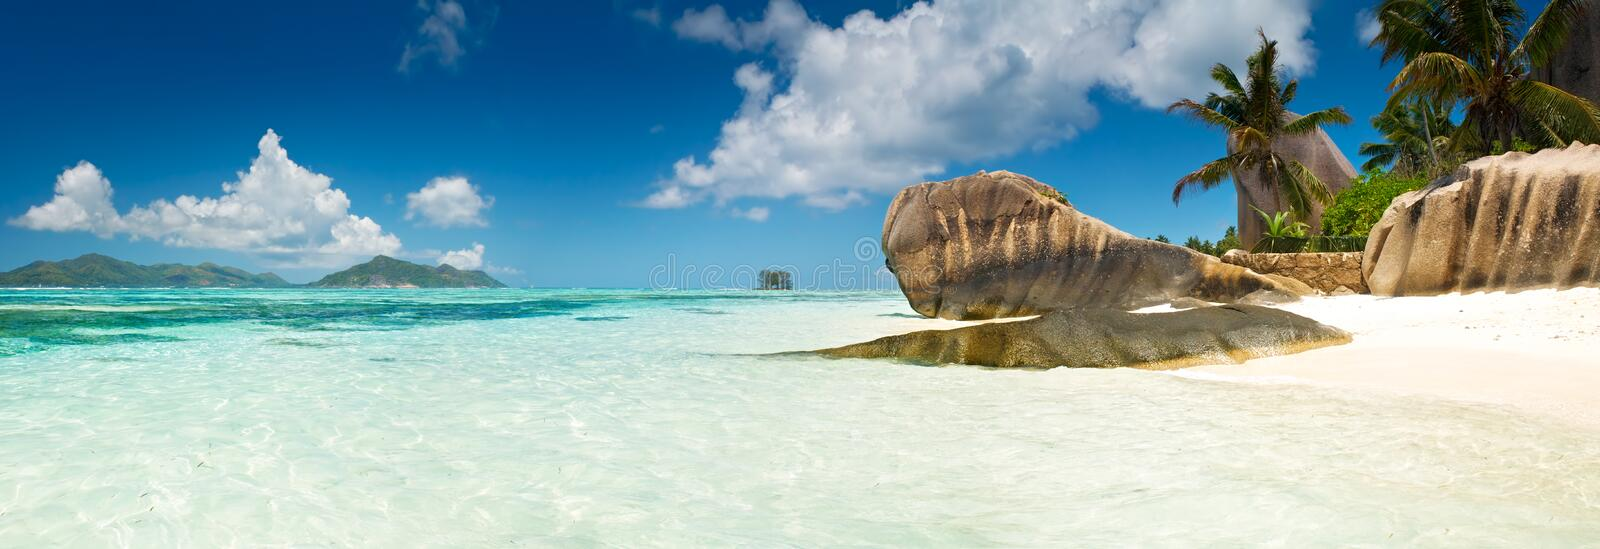 Lagoon with clean sand with stones and with a clear turquoise sea horizontal background royalty free stock photo